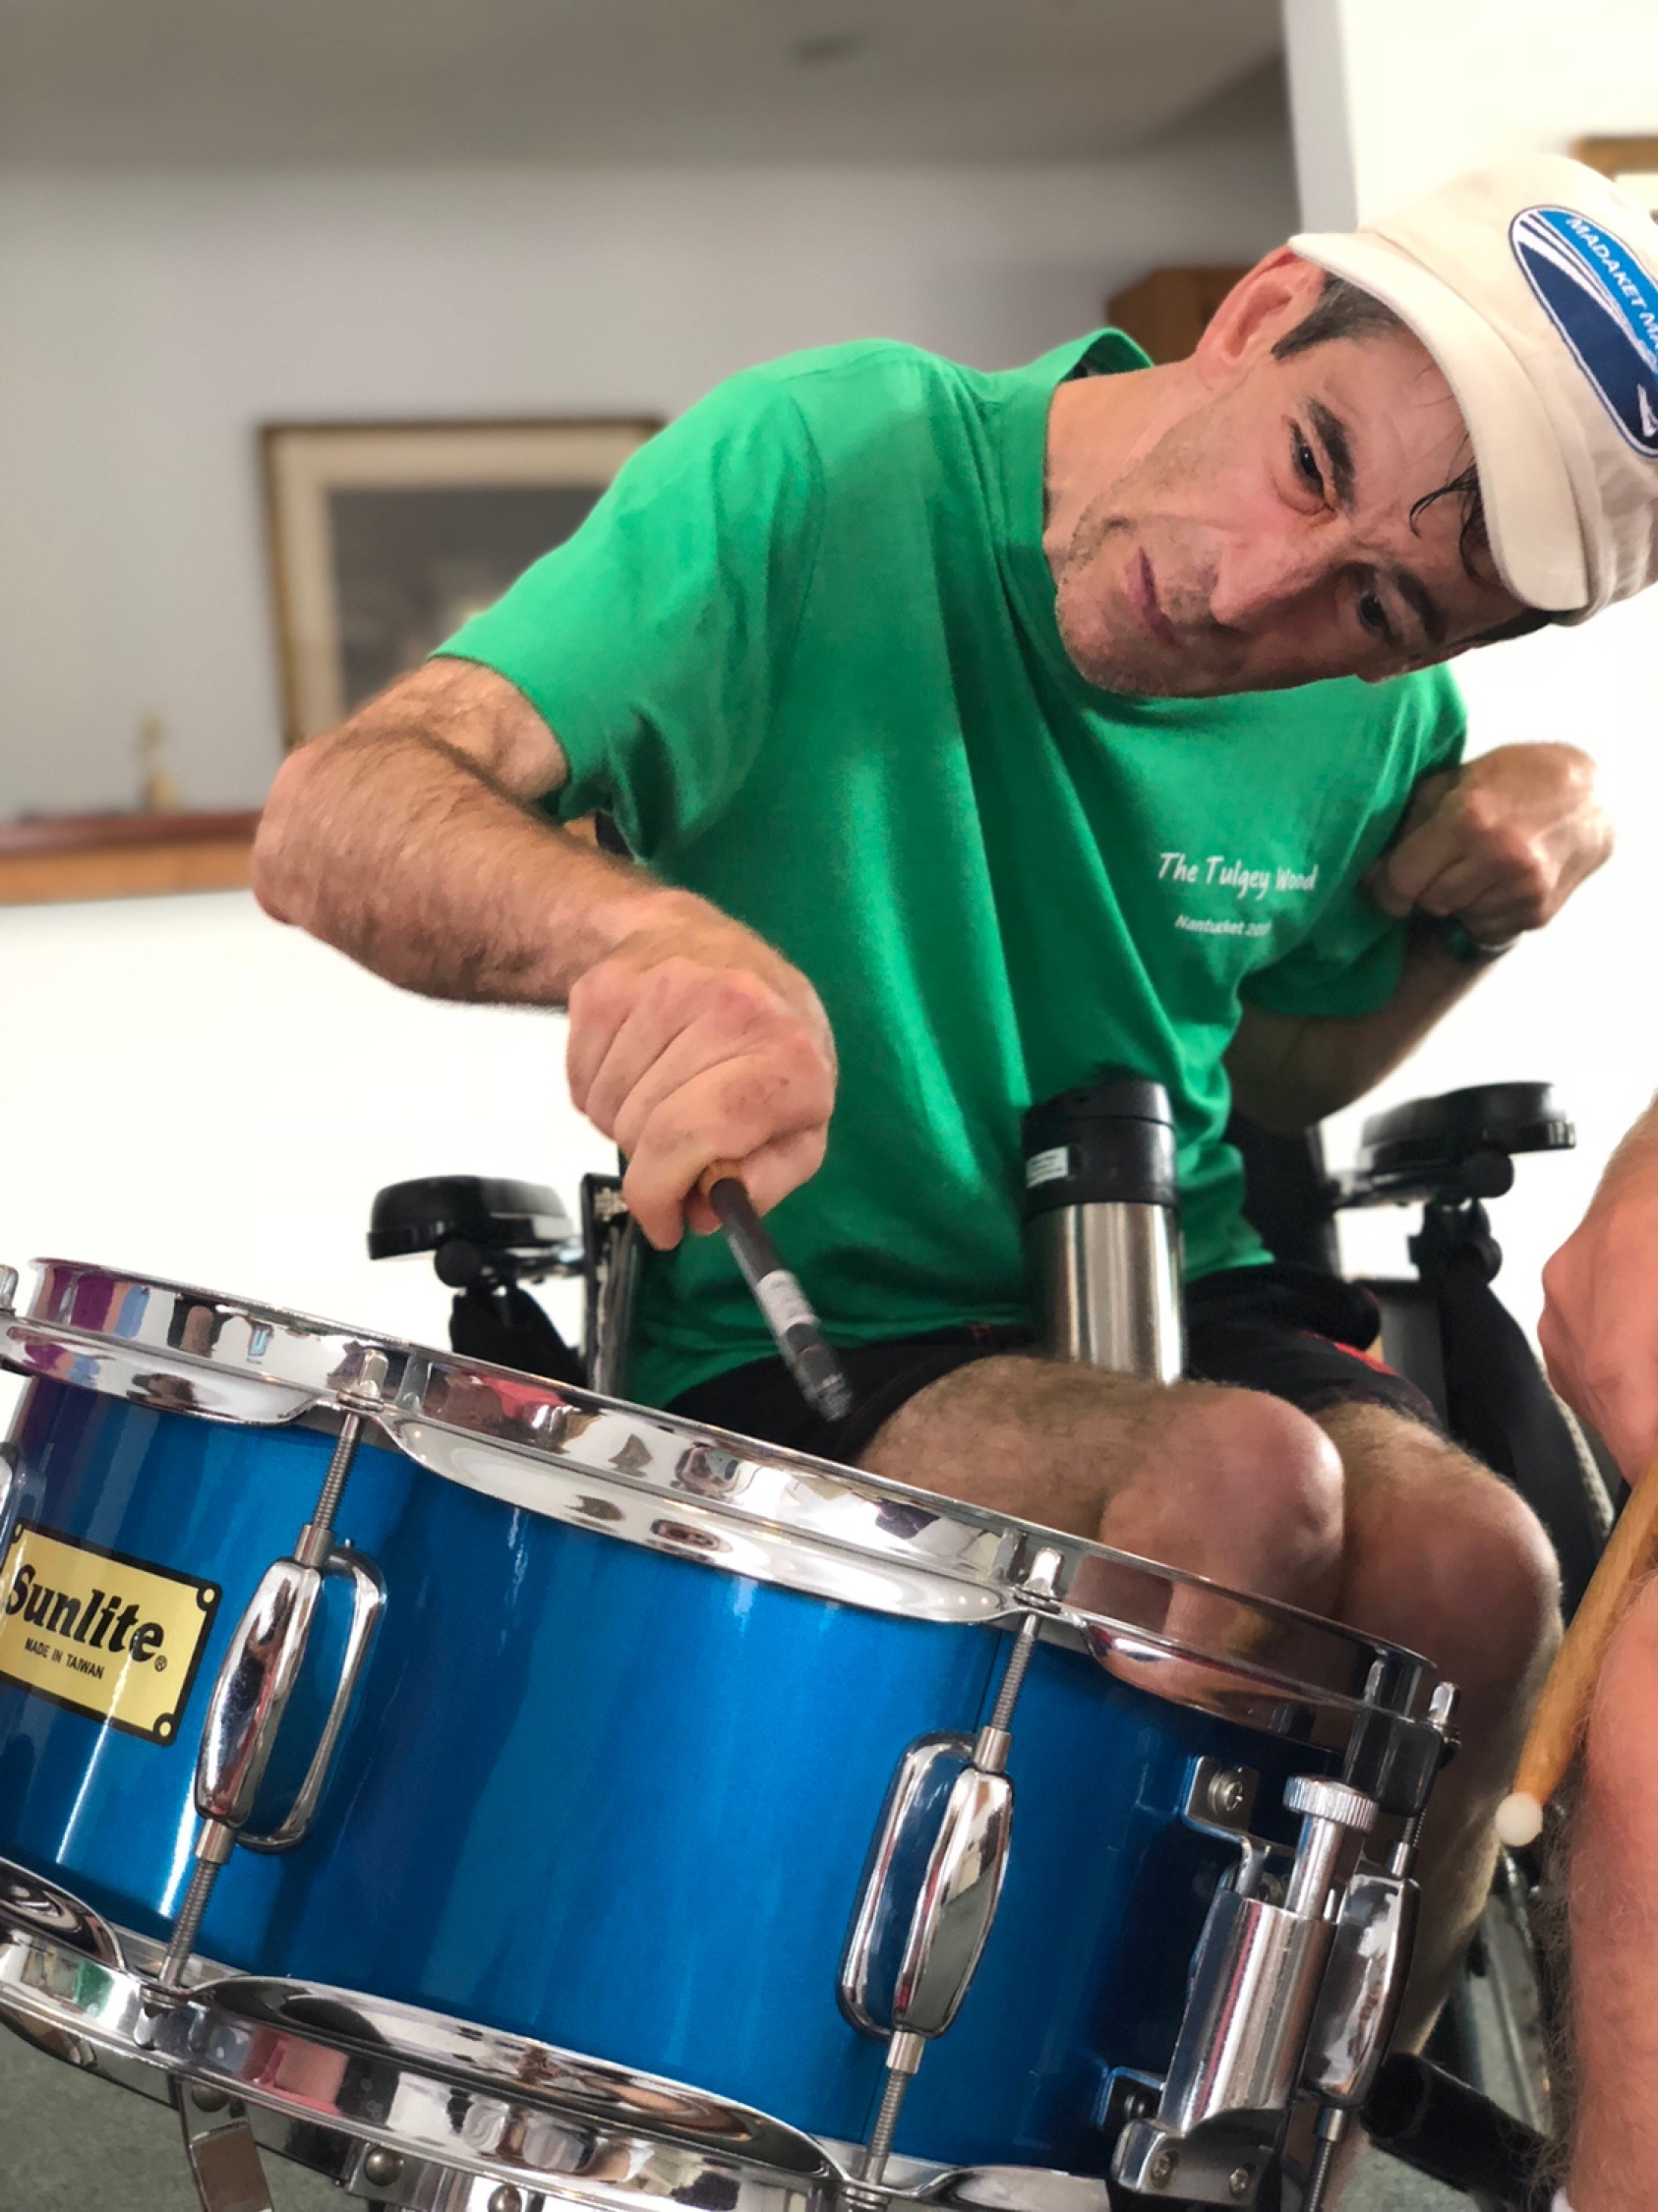 Billy rocks out on drums, too!